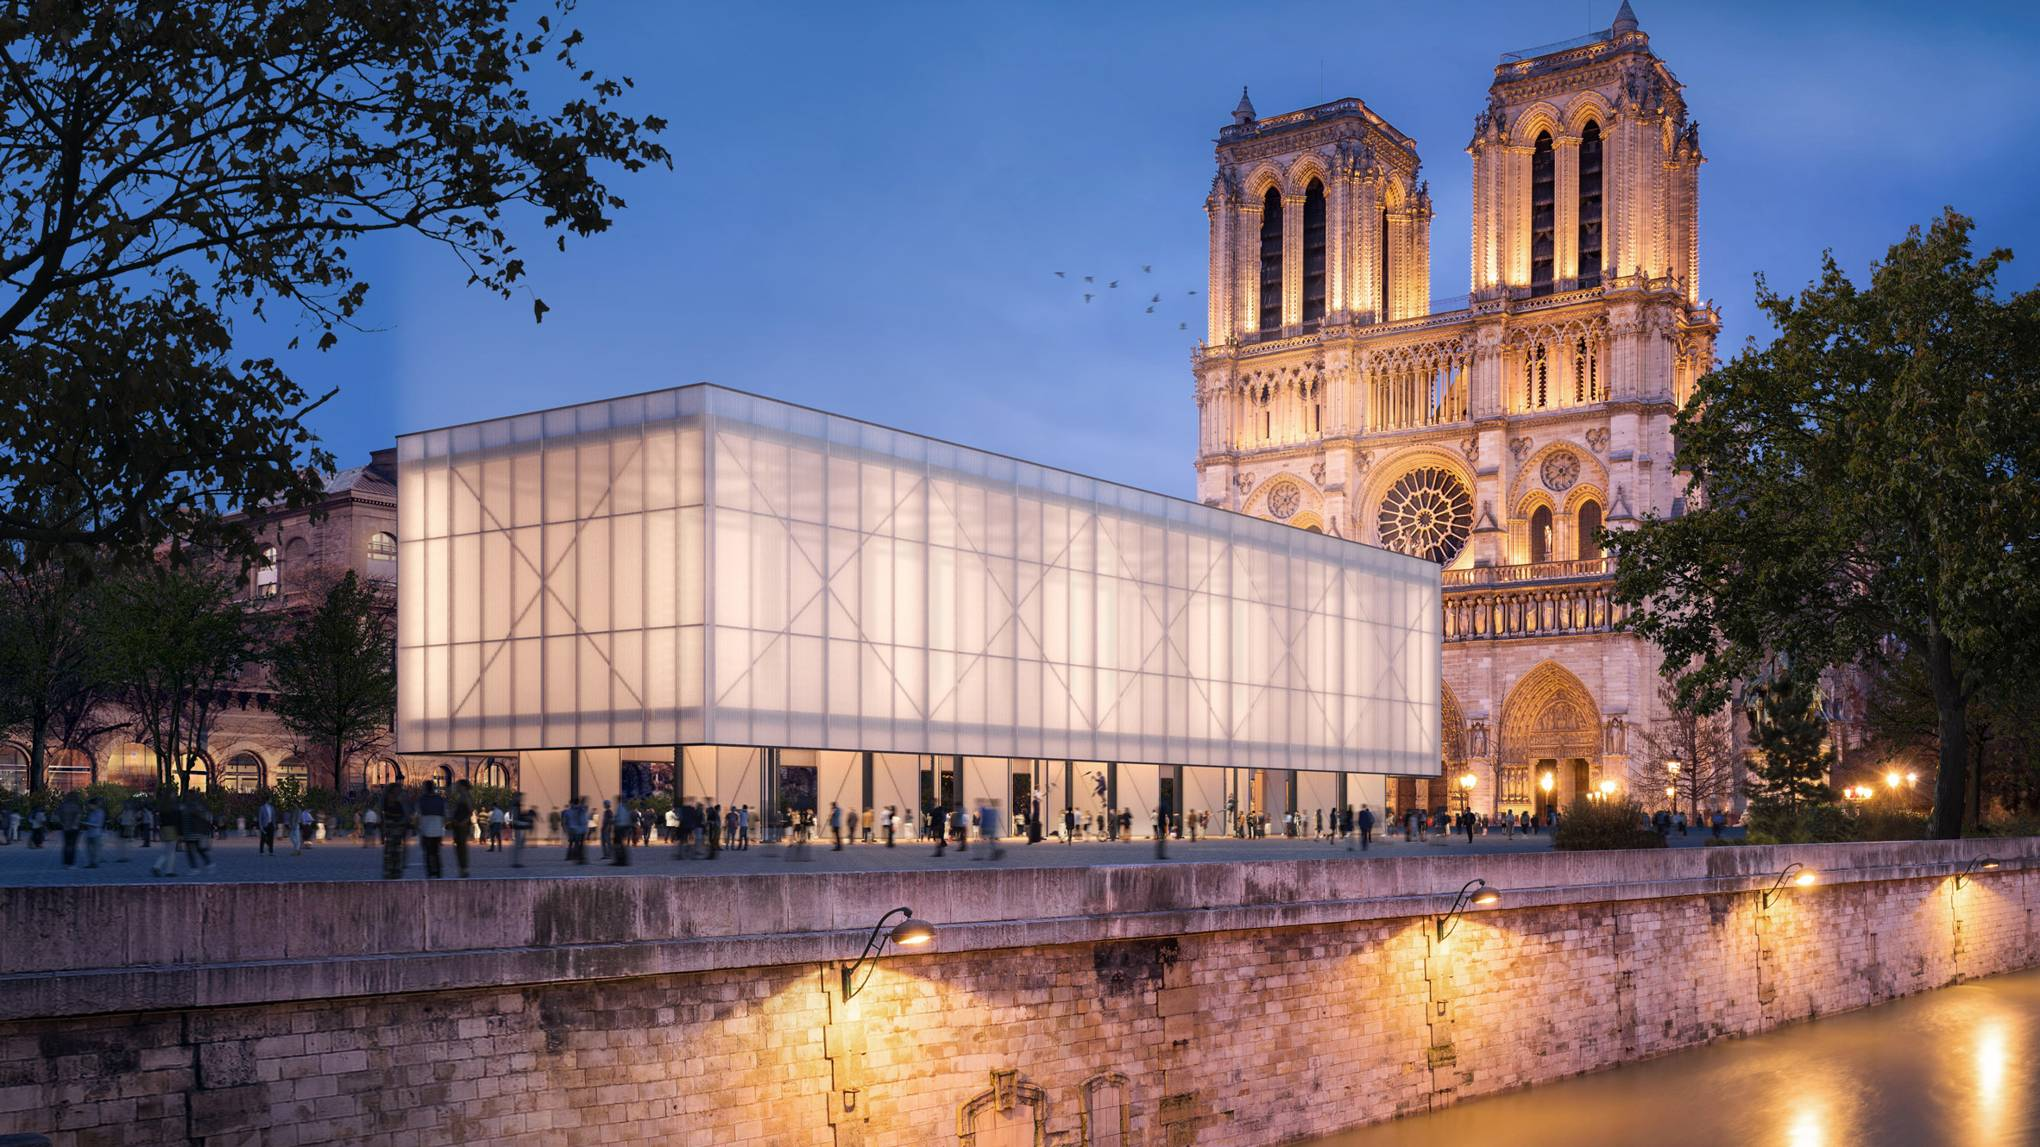 Notre Dame may welcome a temporary pavilion for worship while renovations take place